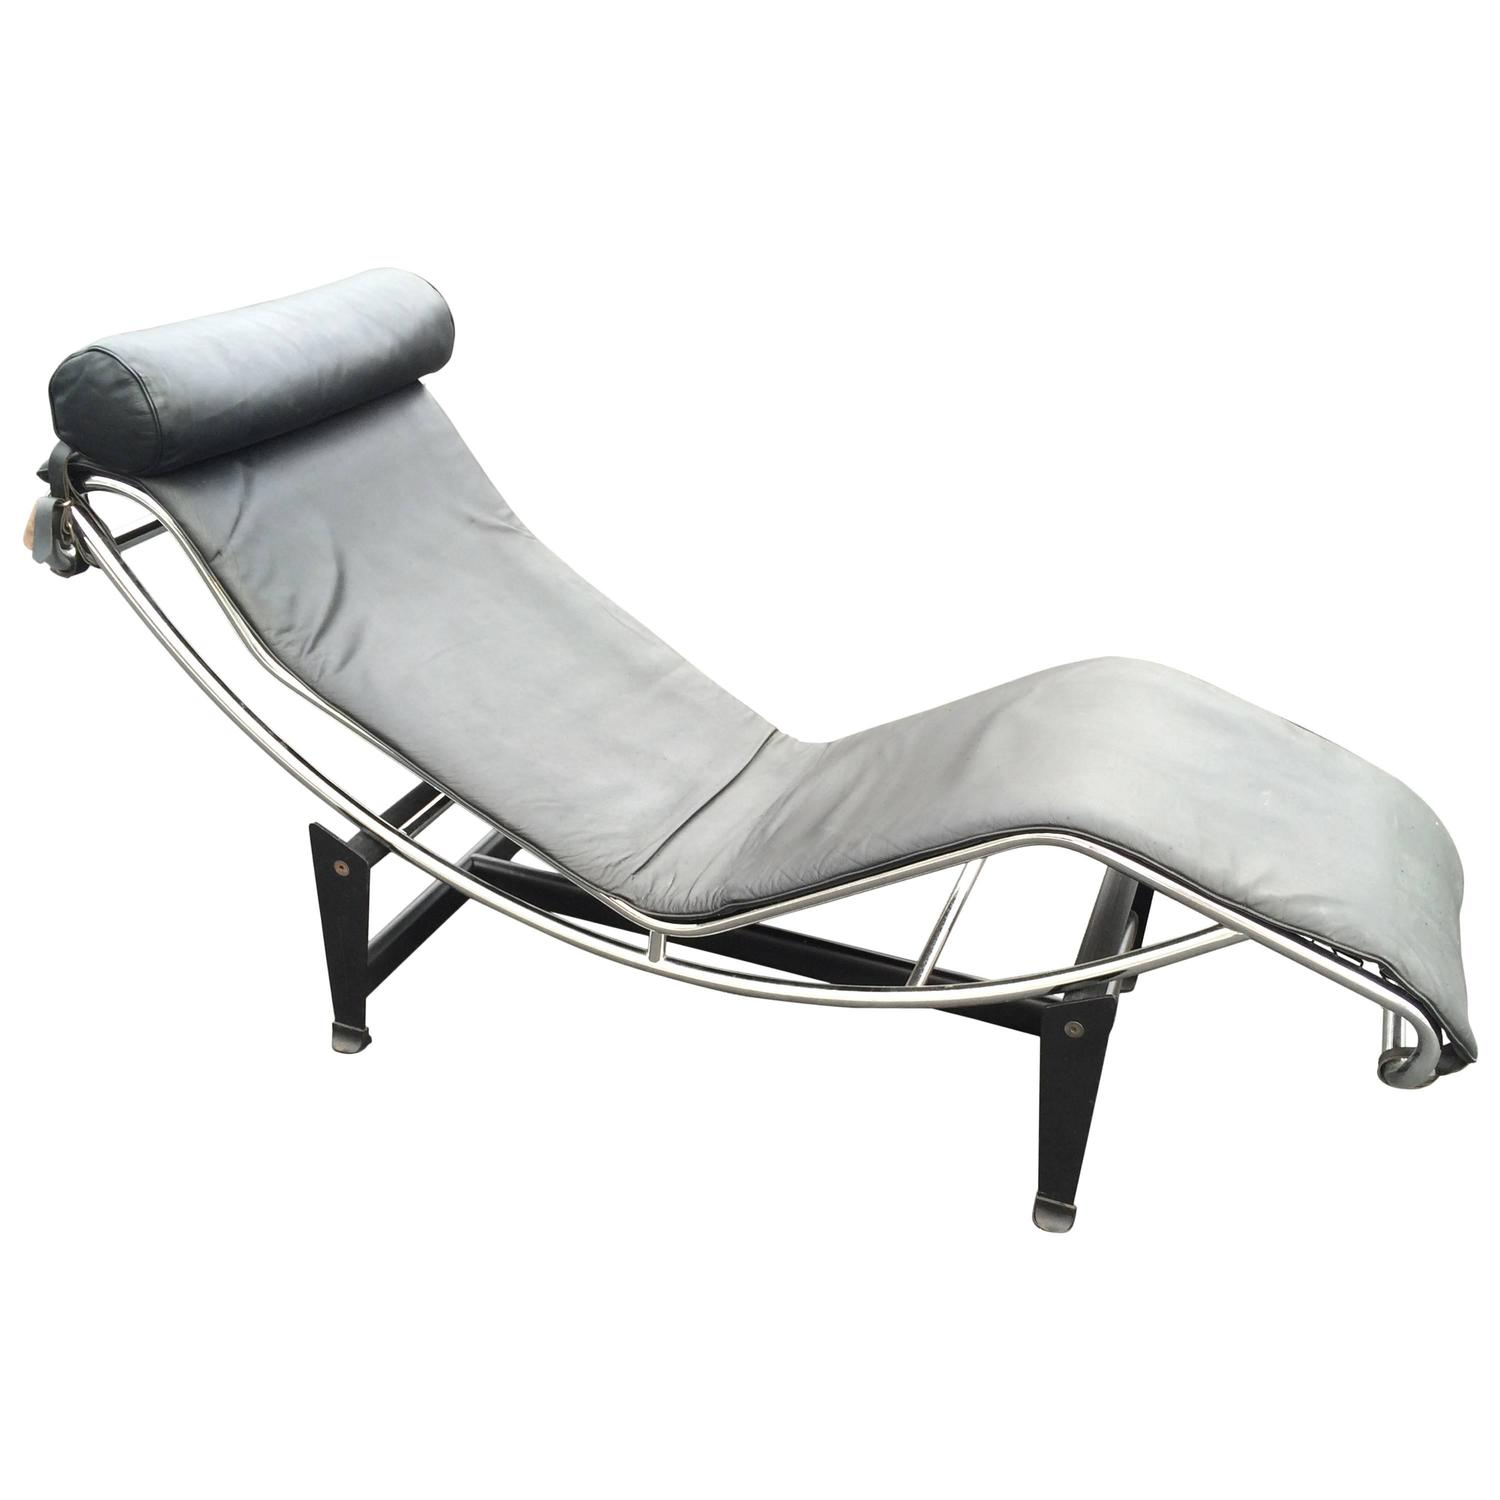 Le corbusier lc4 chaise longue in black leather at 1stdibs for Chaise longue de le corbusier